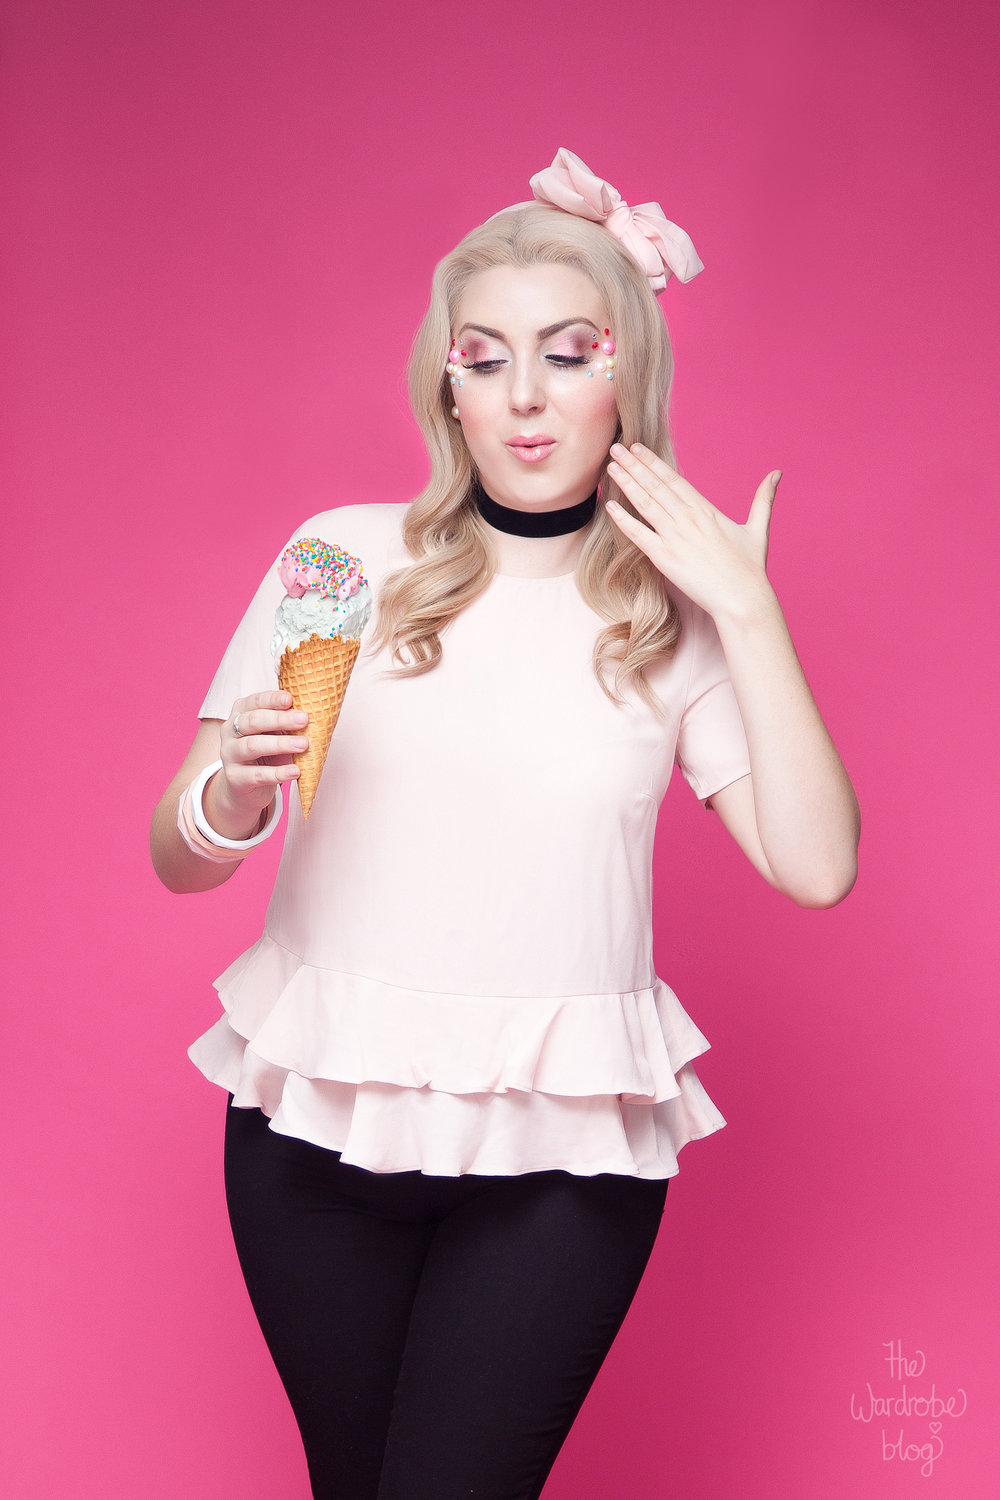 Icecream-Kmart-Pink-Pinup-Portrait